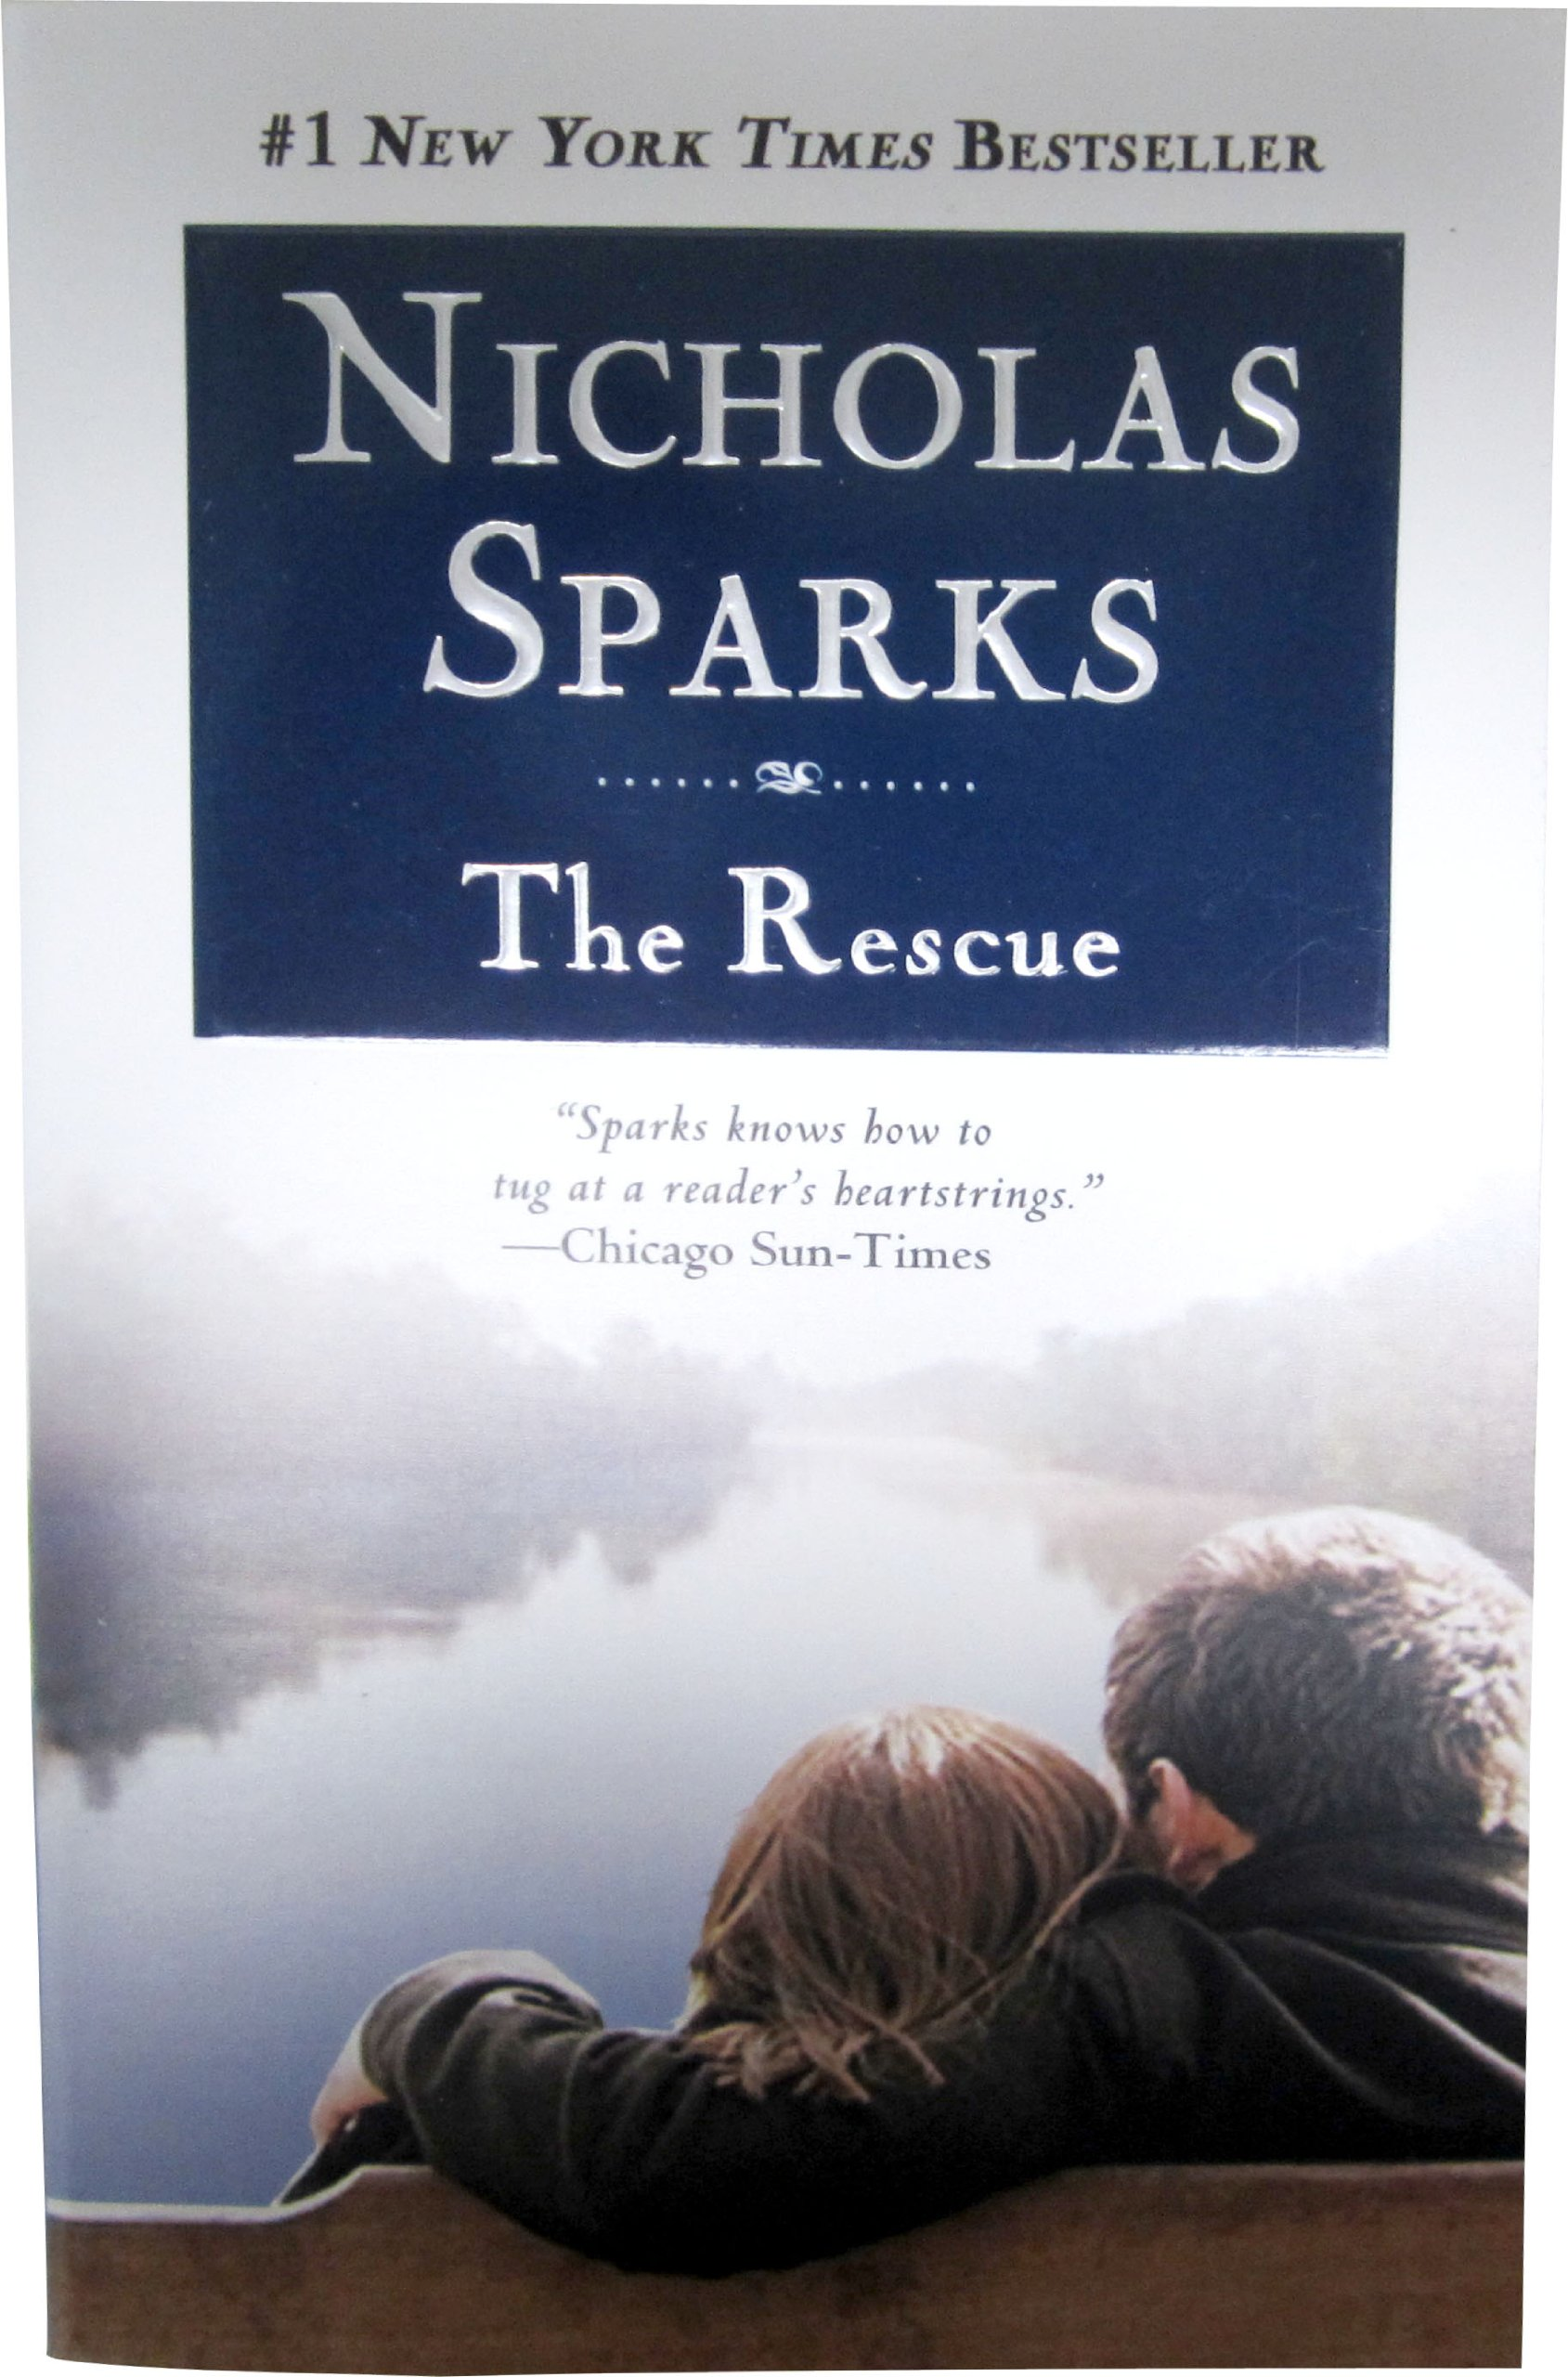 the rescue by nicholas sparks About the author with over 100 million copies of his books sold, nicholas sparks is one of the world's most beloved storytellers his novels include 12 #1.